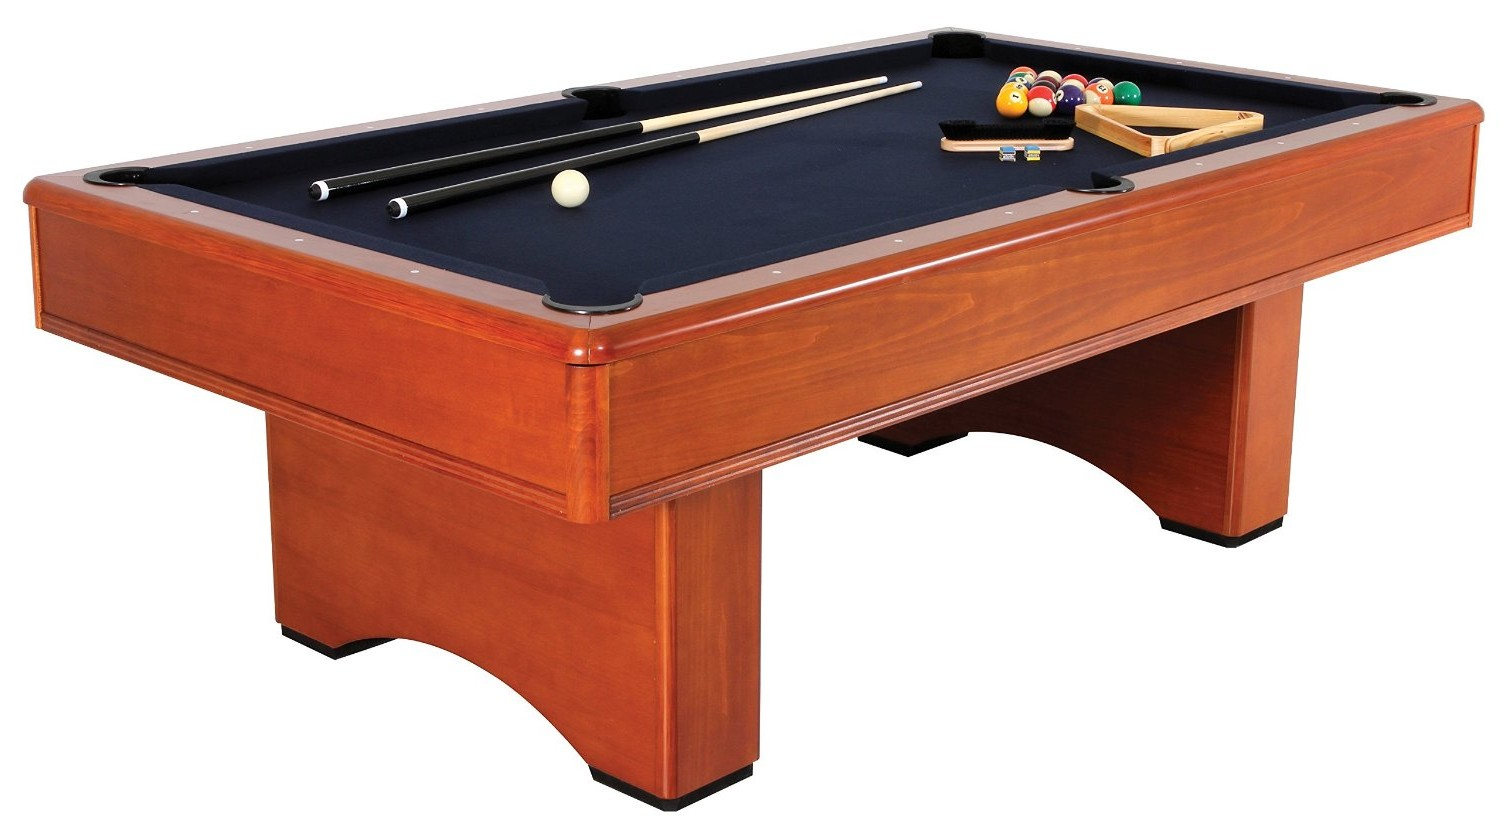 Minnesota Fats Westmont Foot Billiard Table Review - Fats pool table